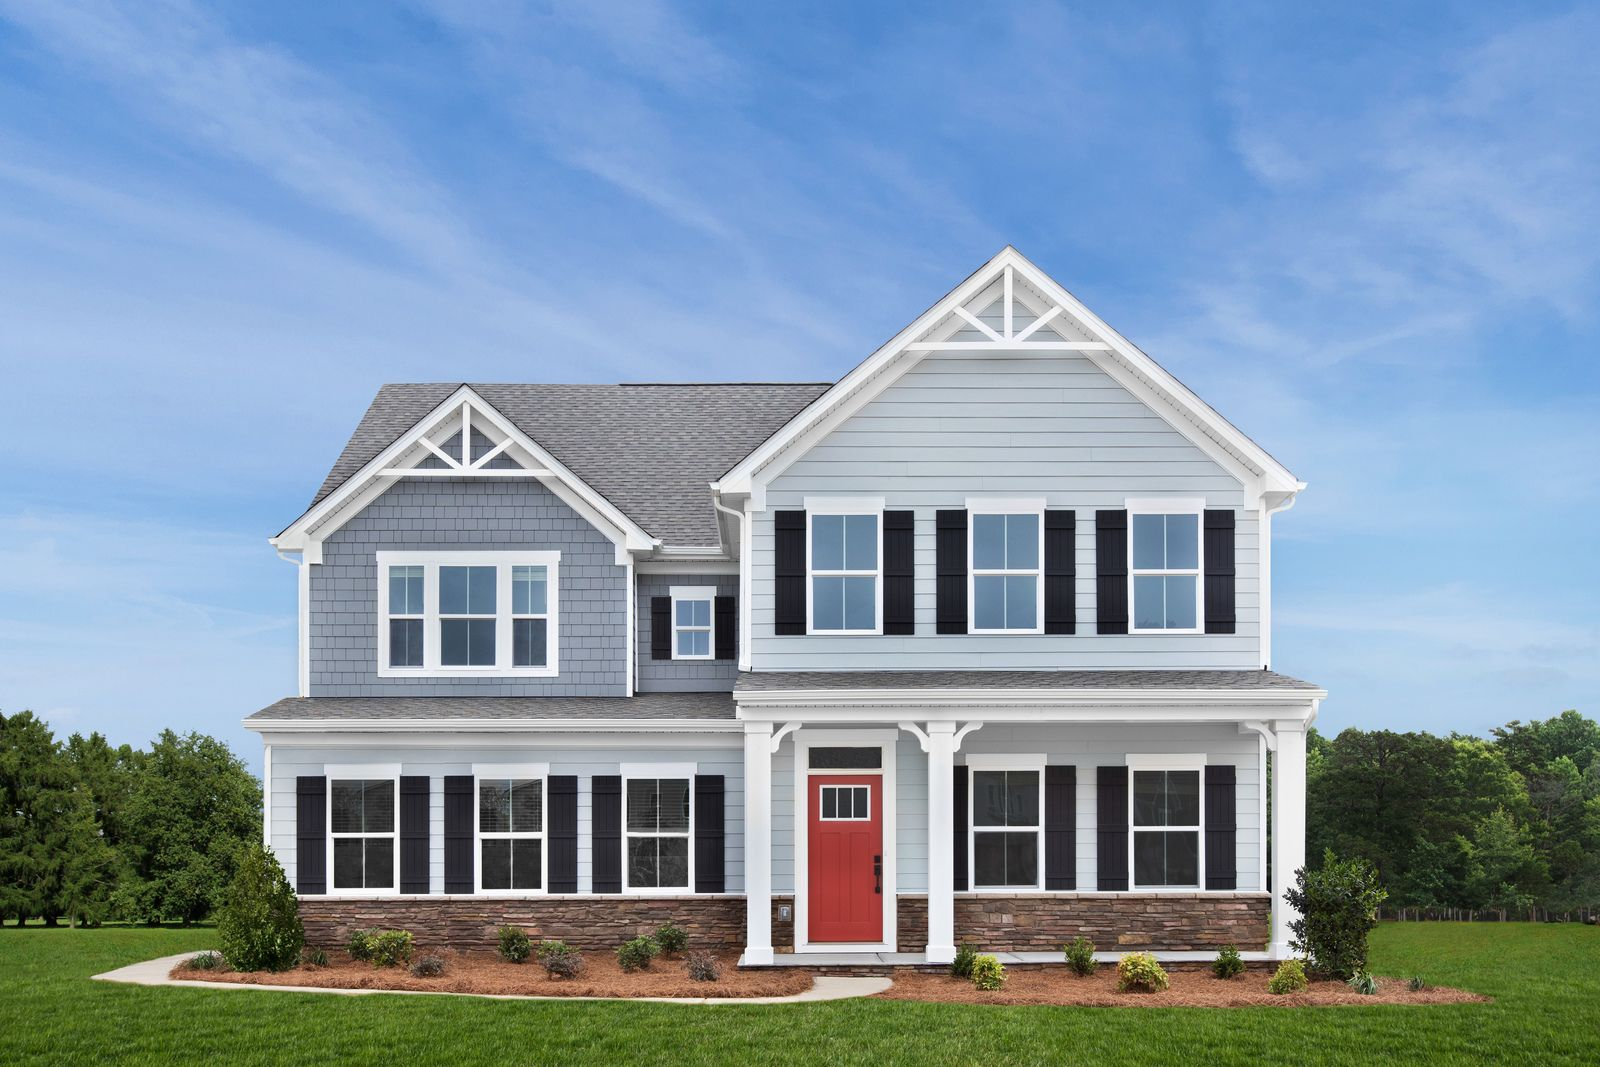 Welcome Home to Windsor Estates:Enjoy ½ acre homesites in Lakota schools, minutes from shopping and dining, from the upper $200s!Click here to schedule a 1-on-1, phone, or video appointment